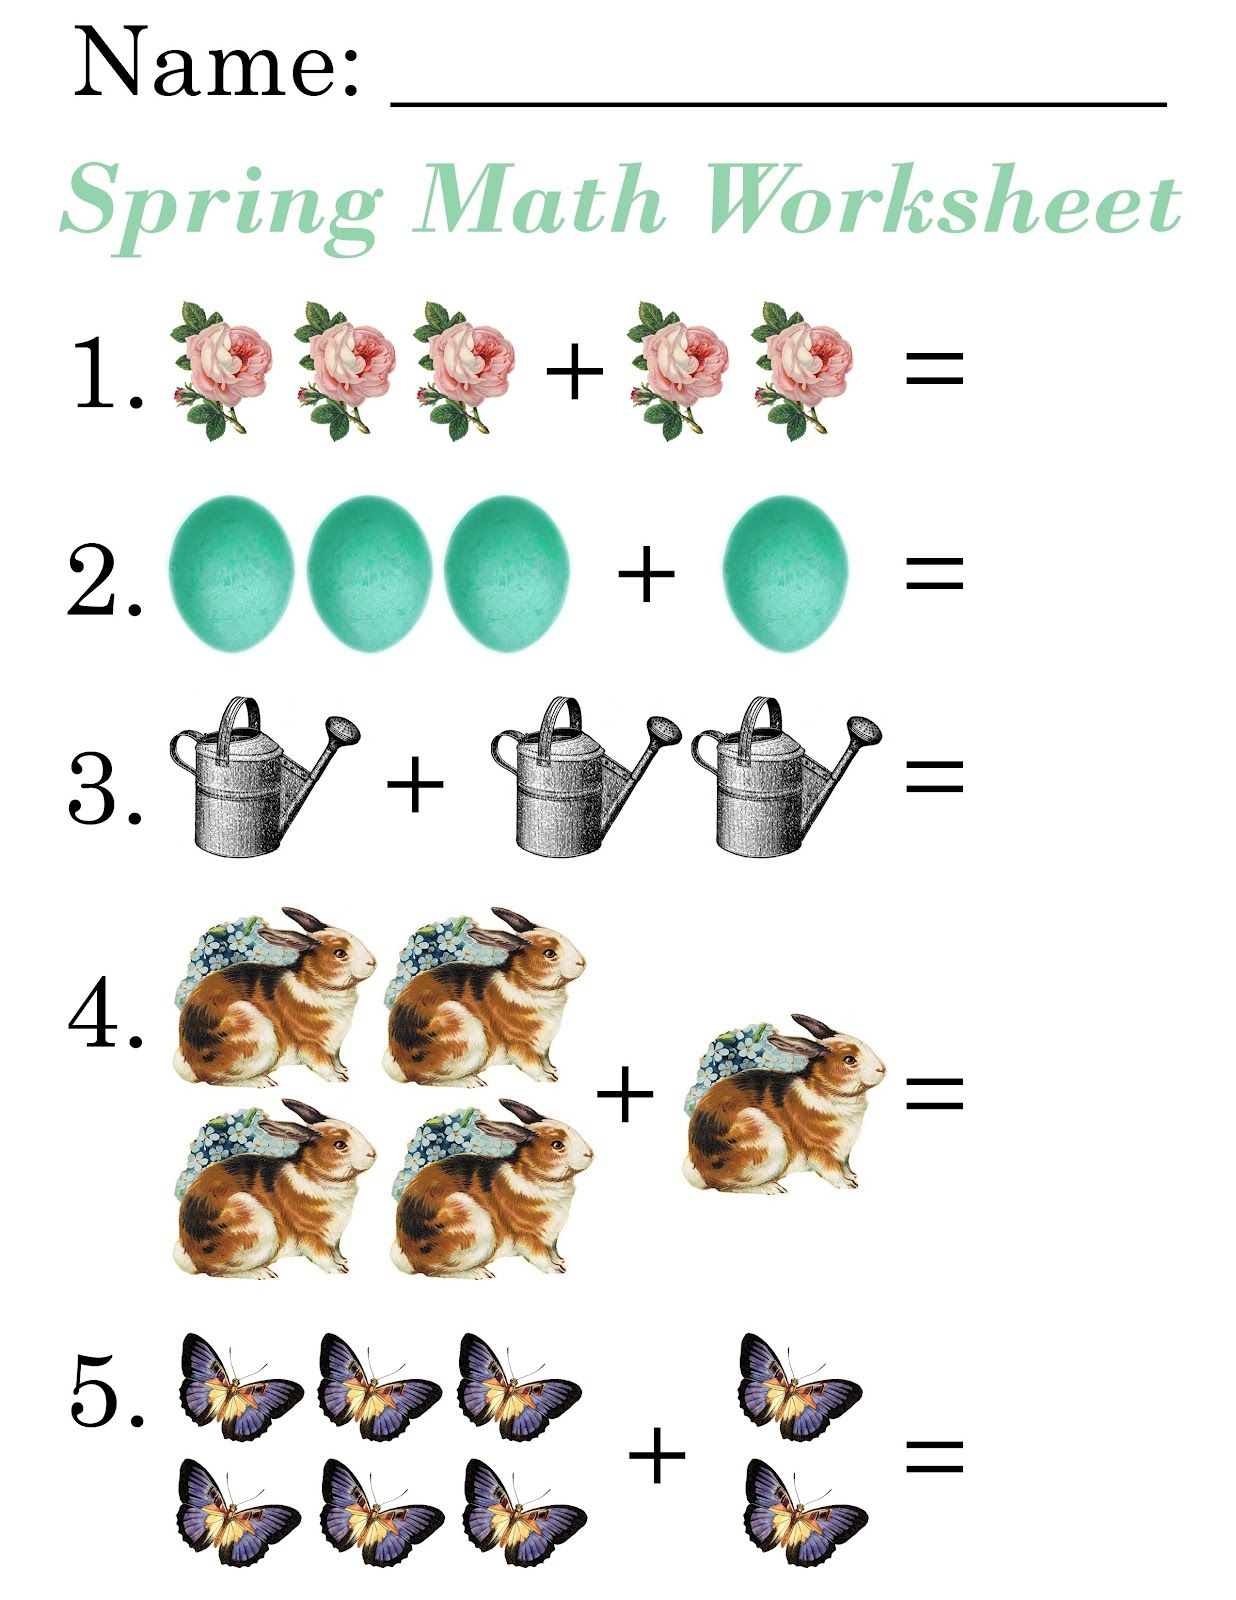 Lilac Lavender Kids Spring Math Worksheets – Free Printable Worksheets for Kindergarten Math